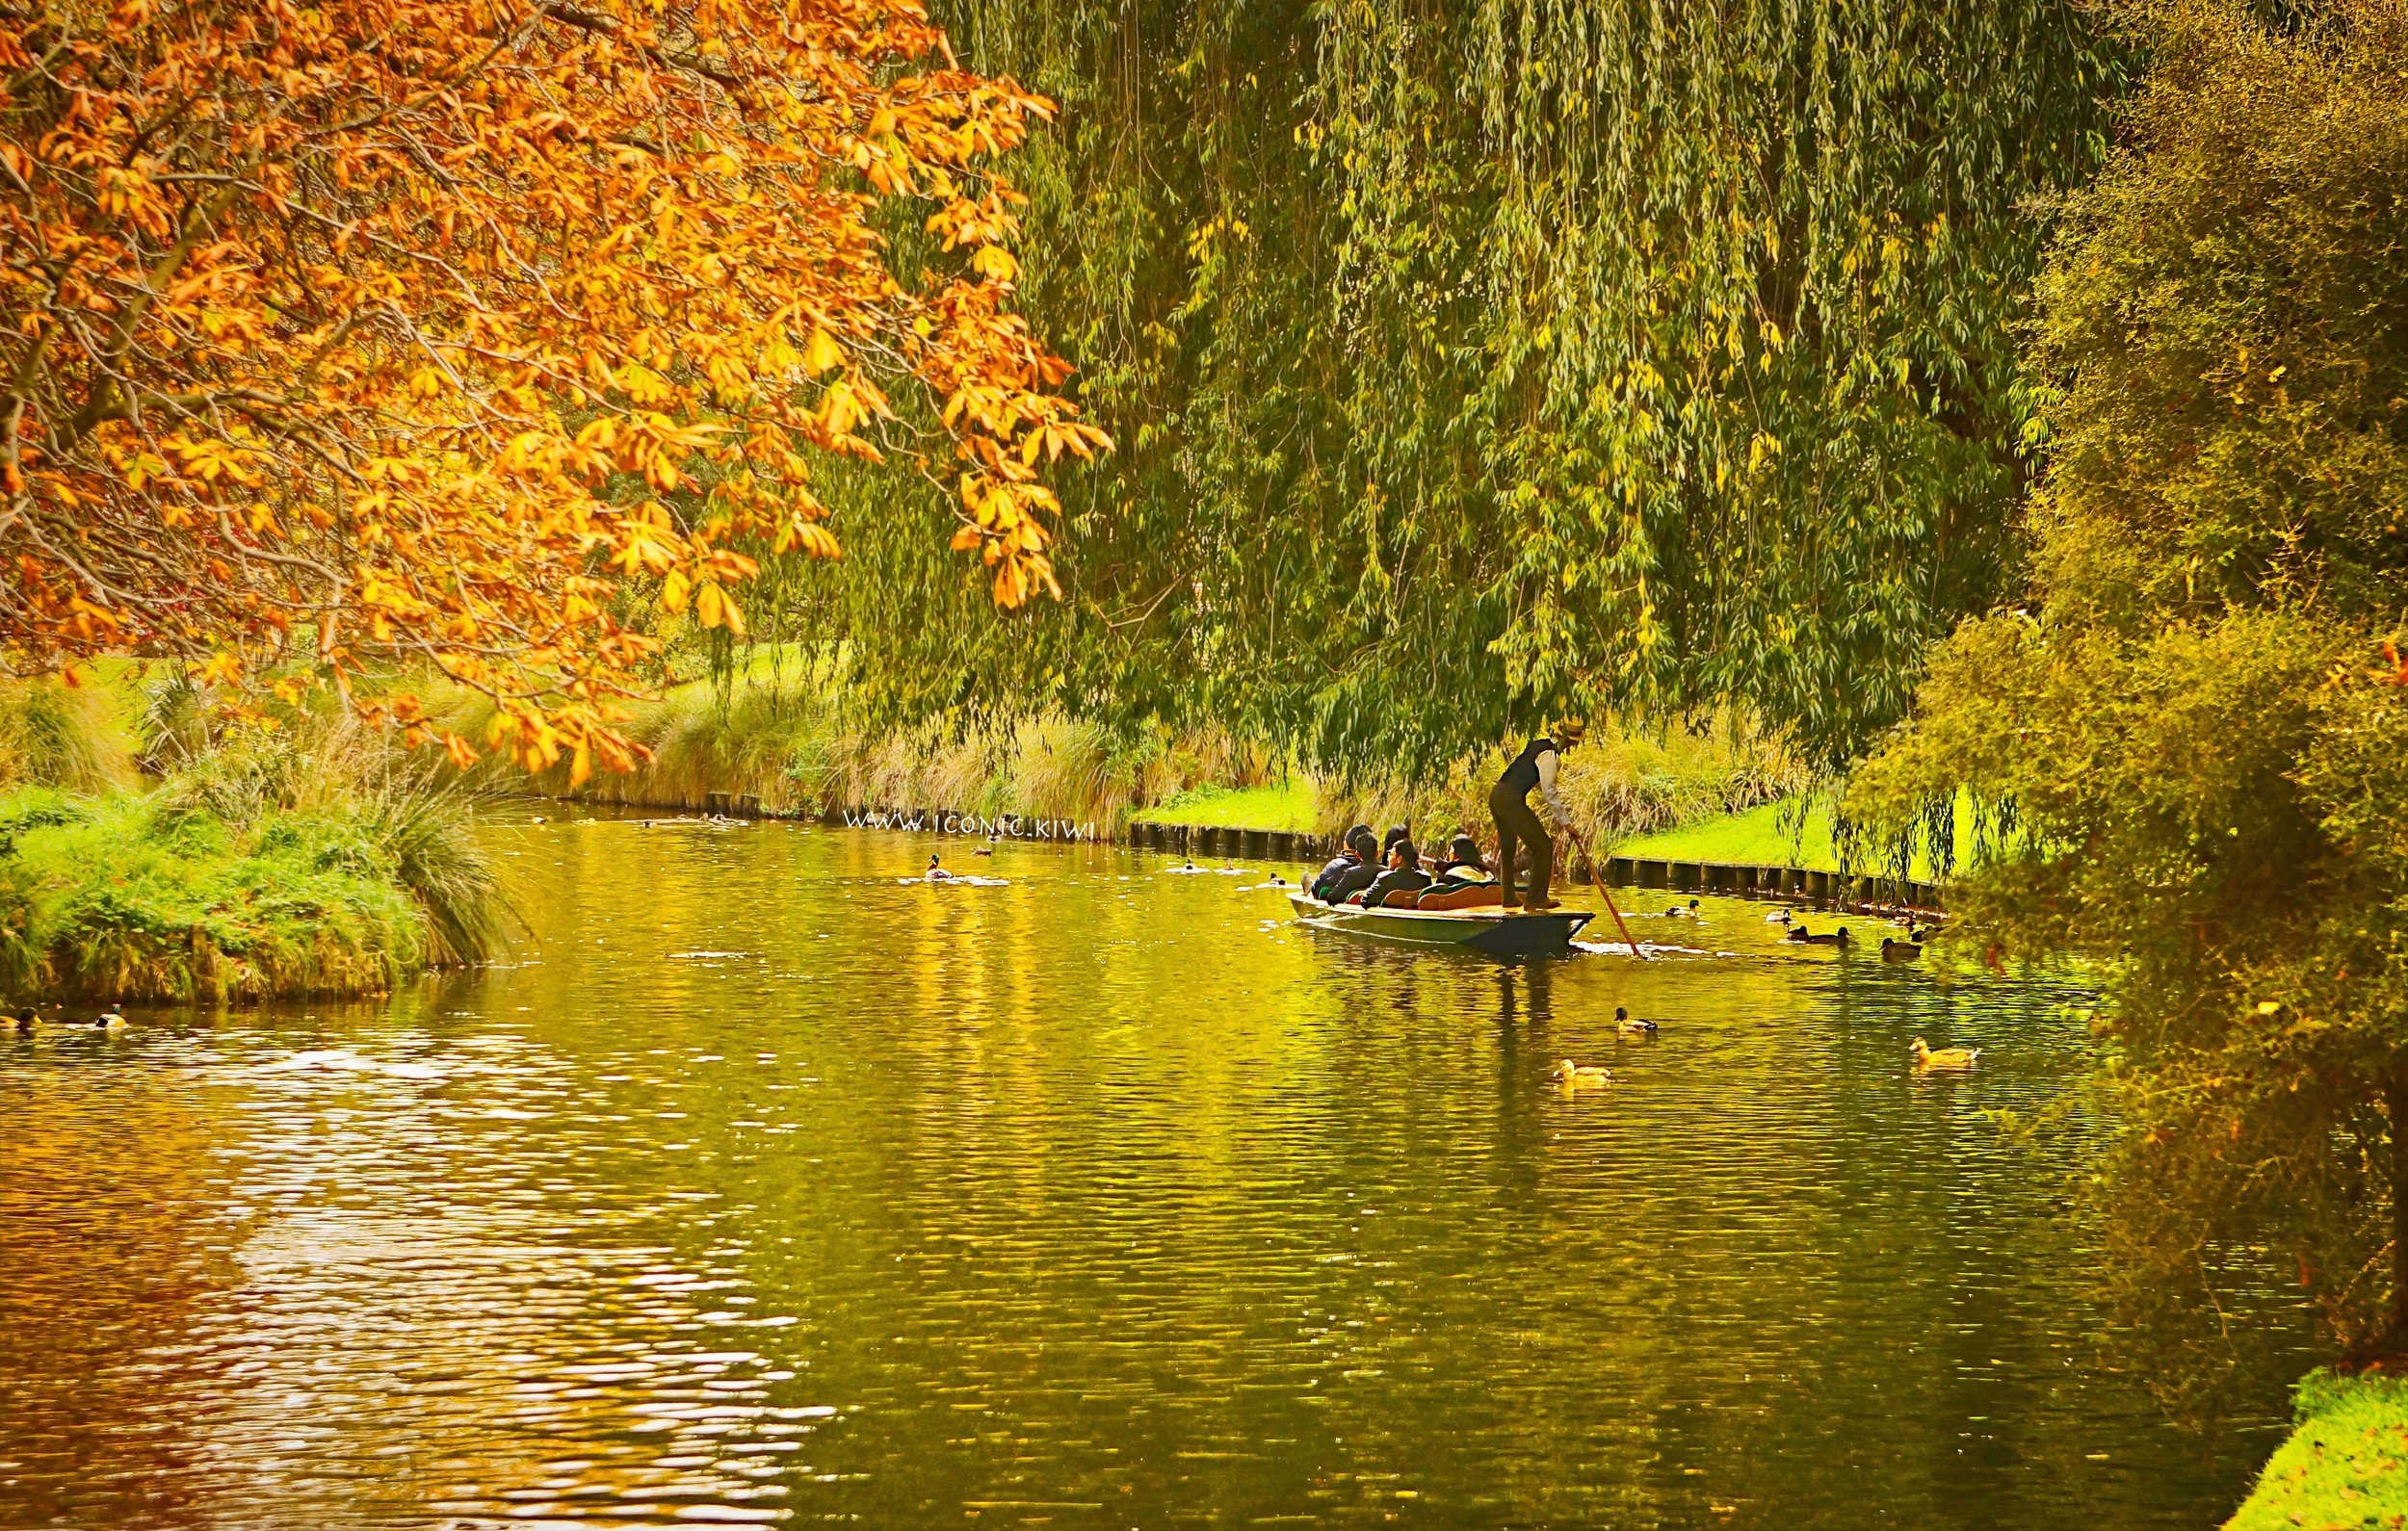 Autumn day on the river, Christchurch, New Zealand